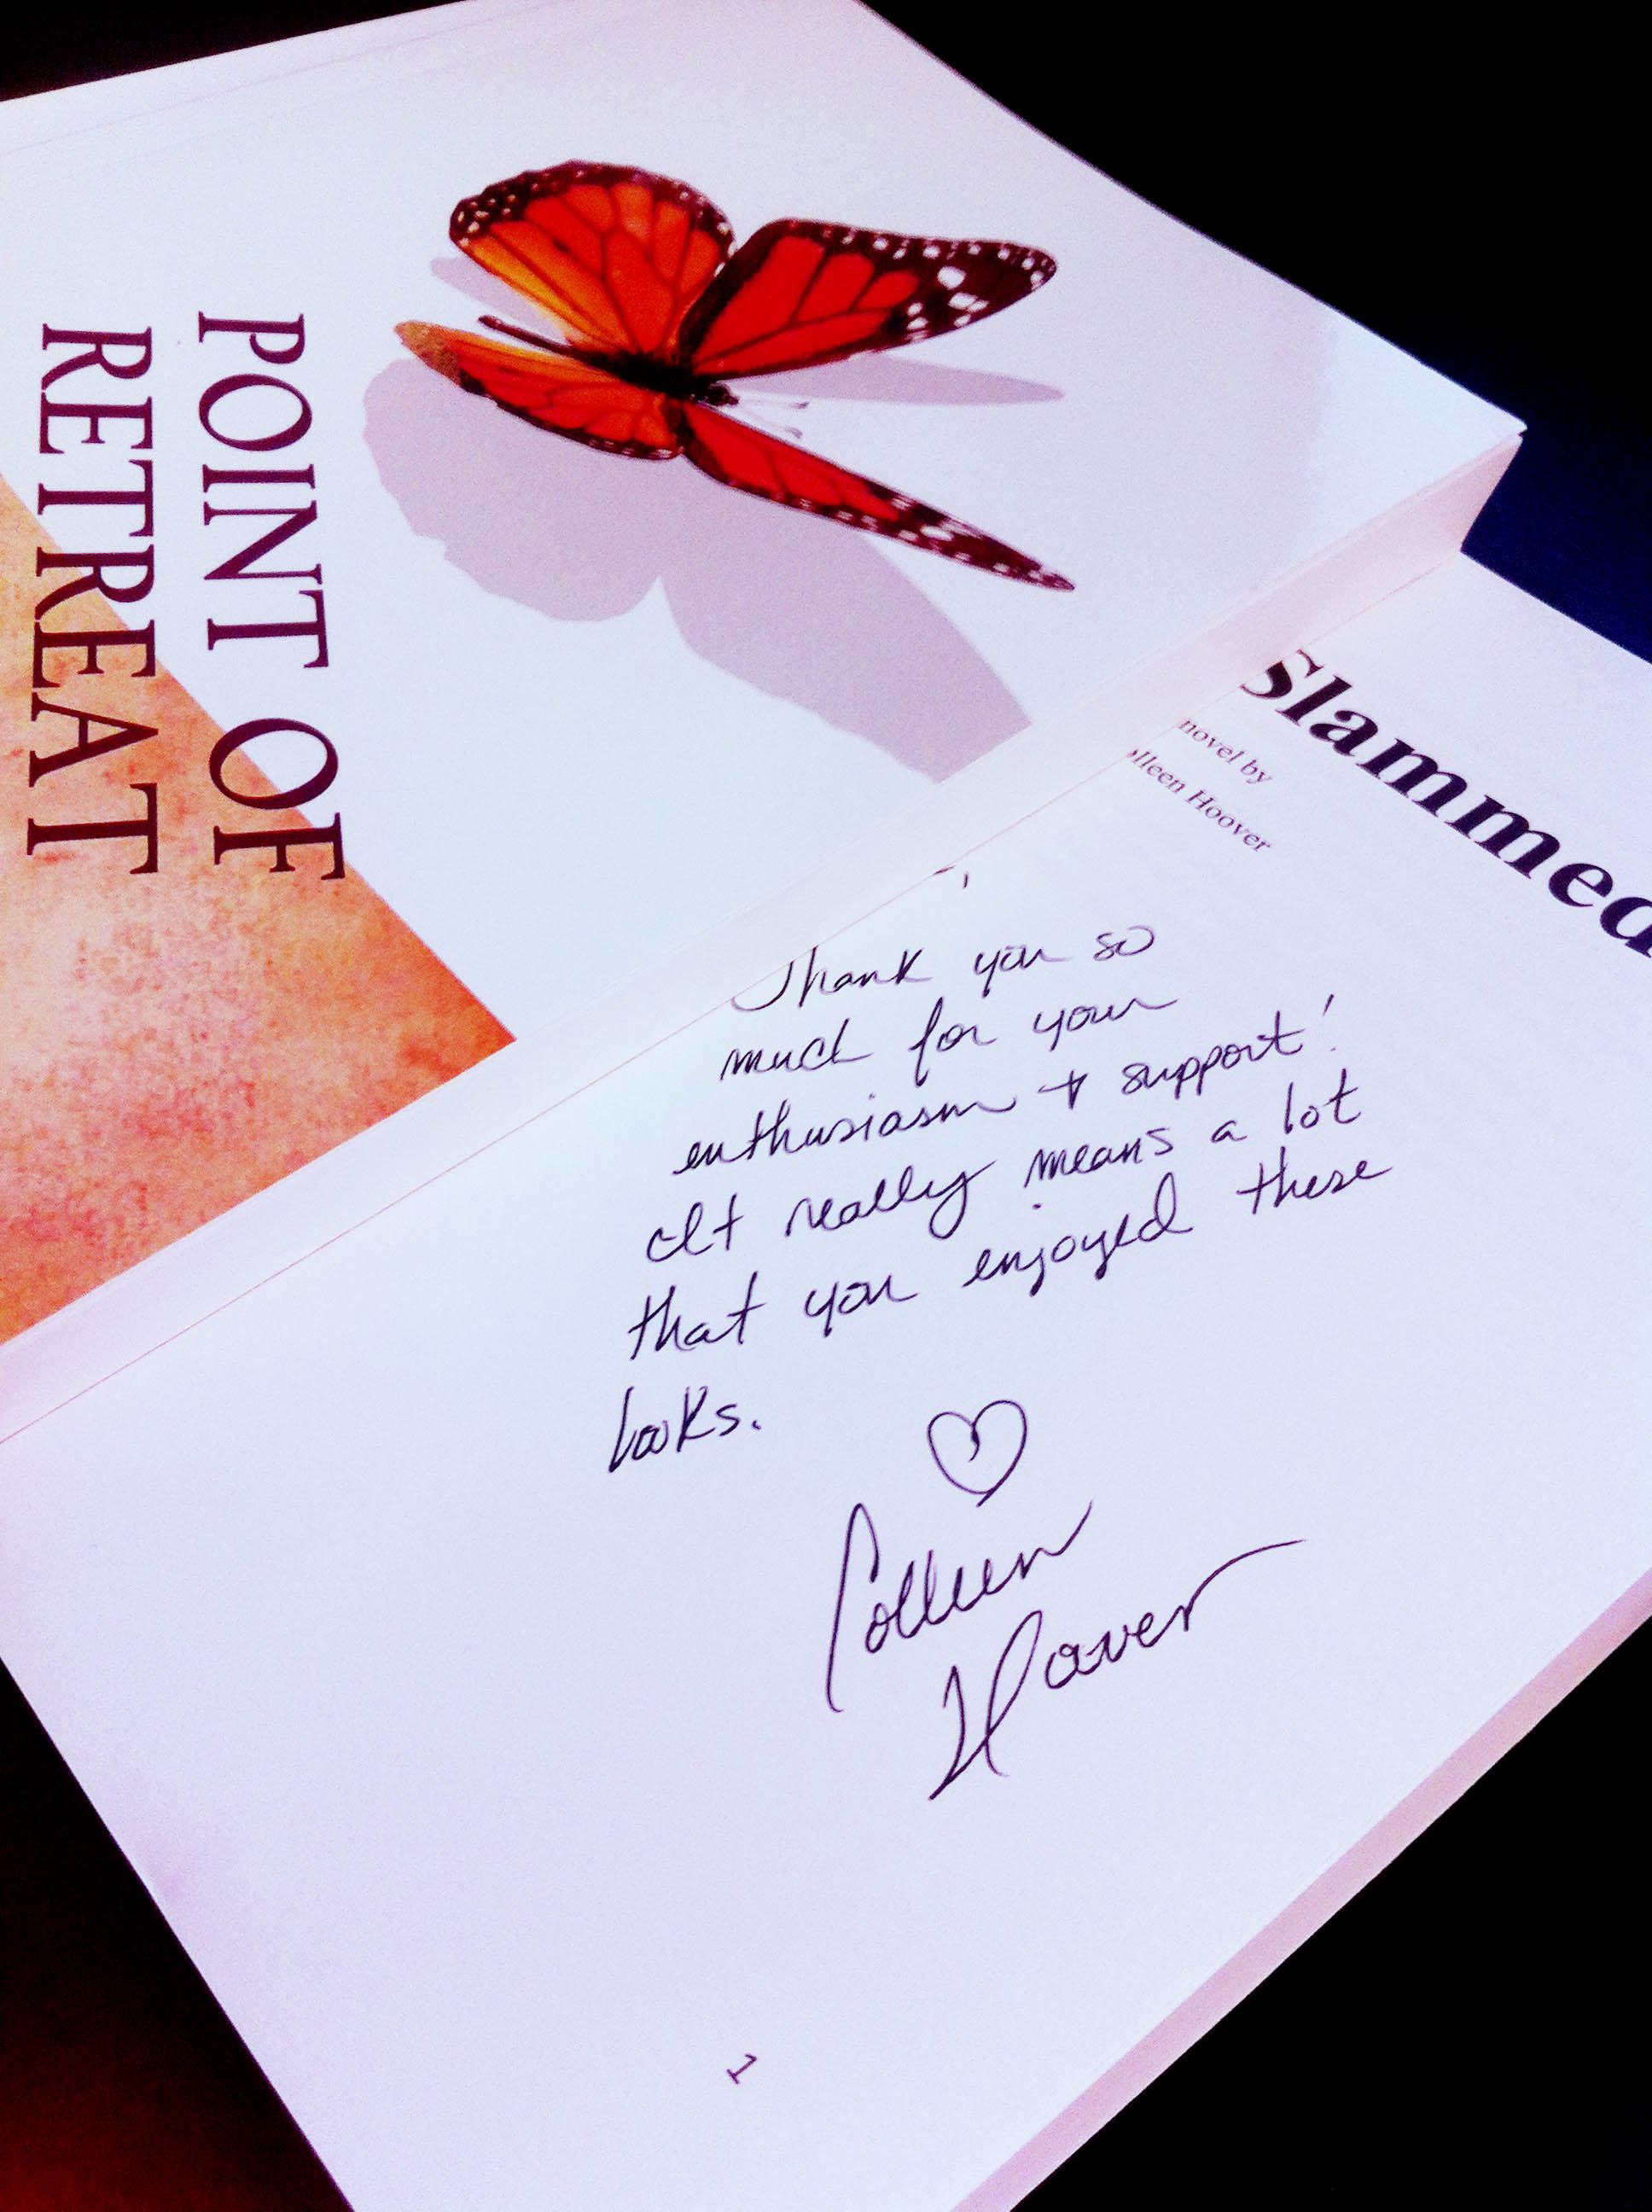 Thank you Colleen Hoover!!!!! (author of Slammed and Point of Retreat)